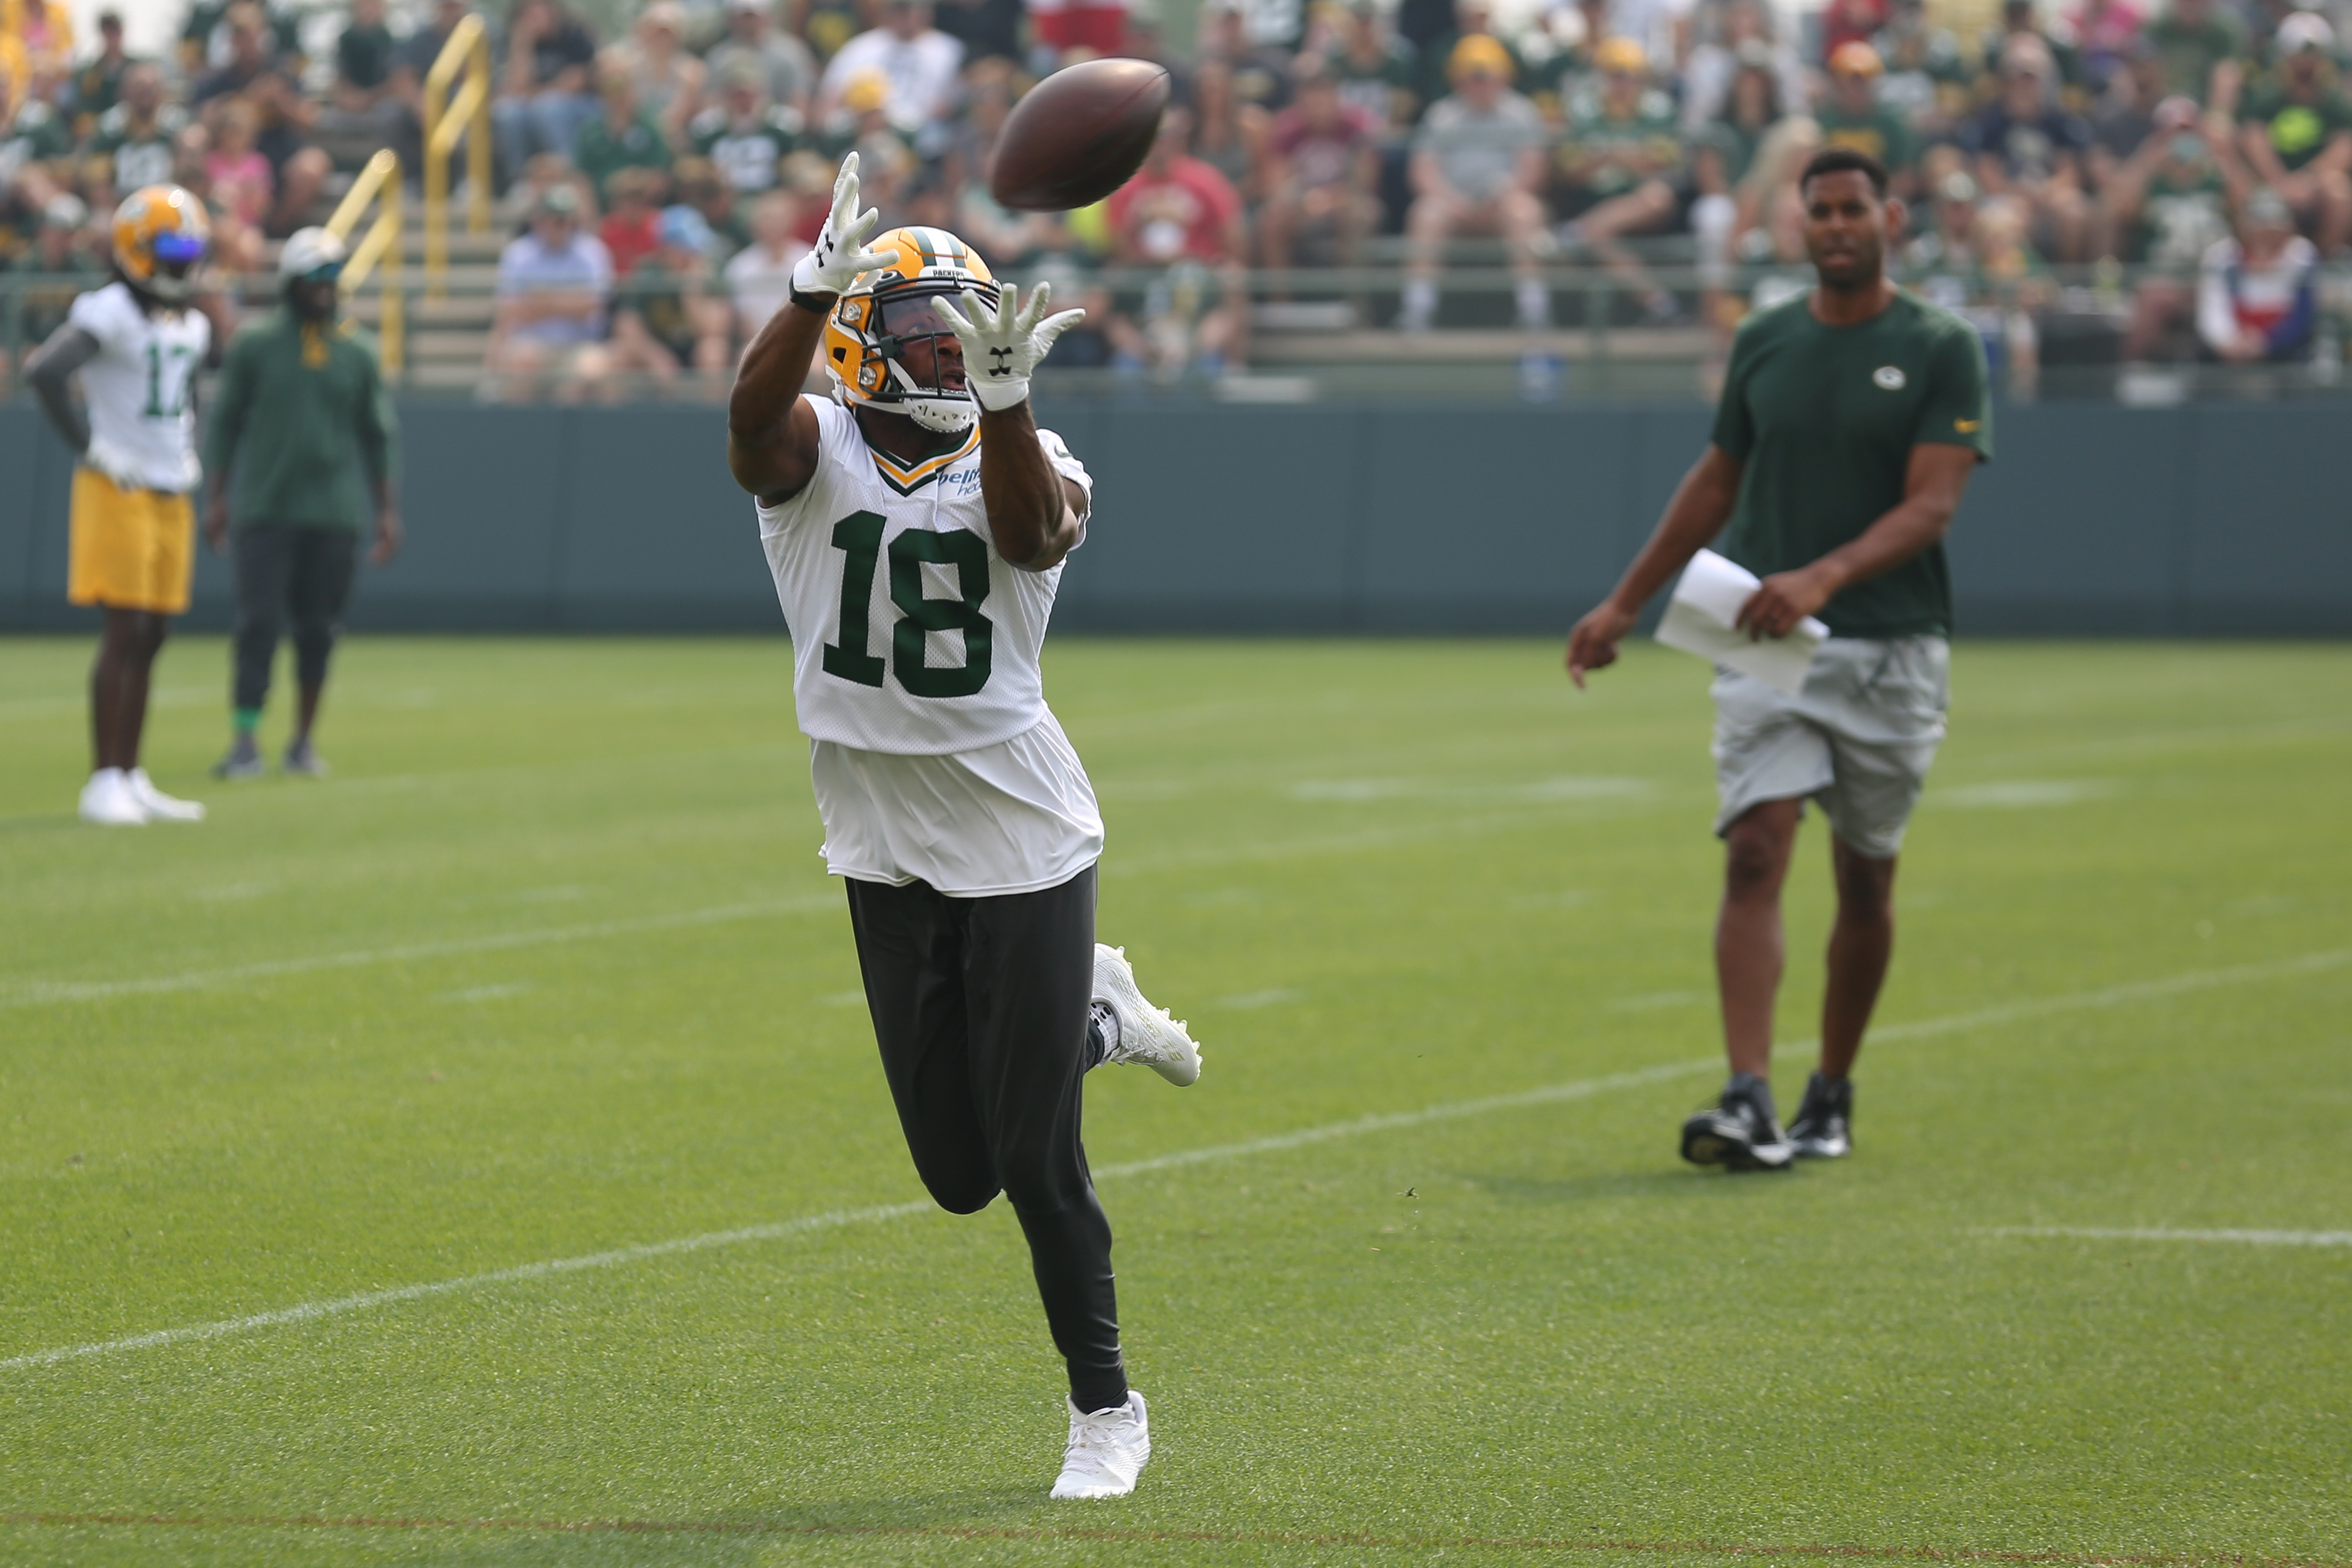 NFL: JUL 31 Green Bay Packers Training Camp